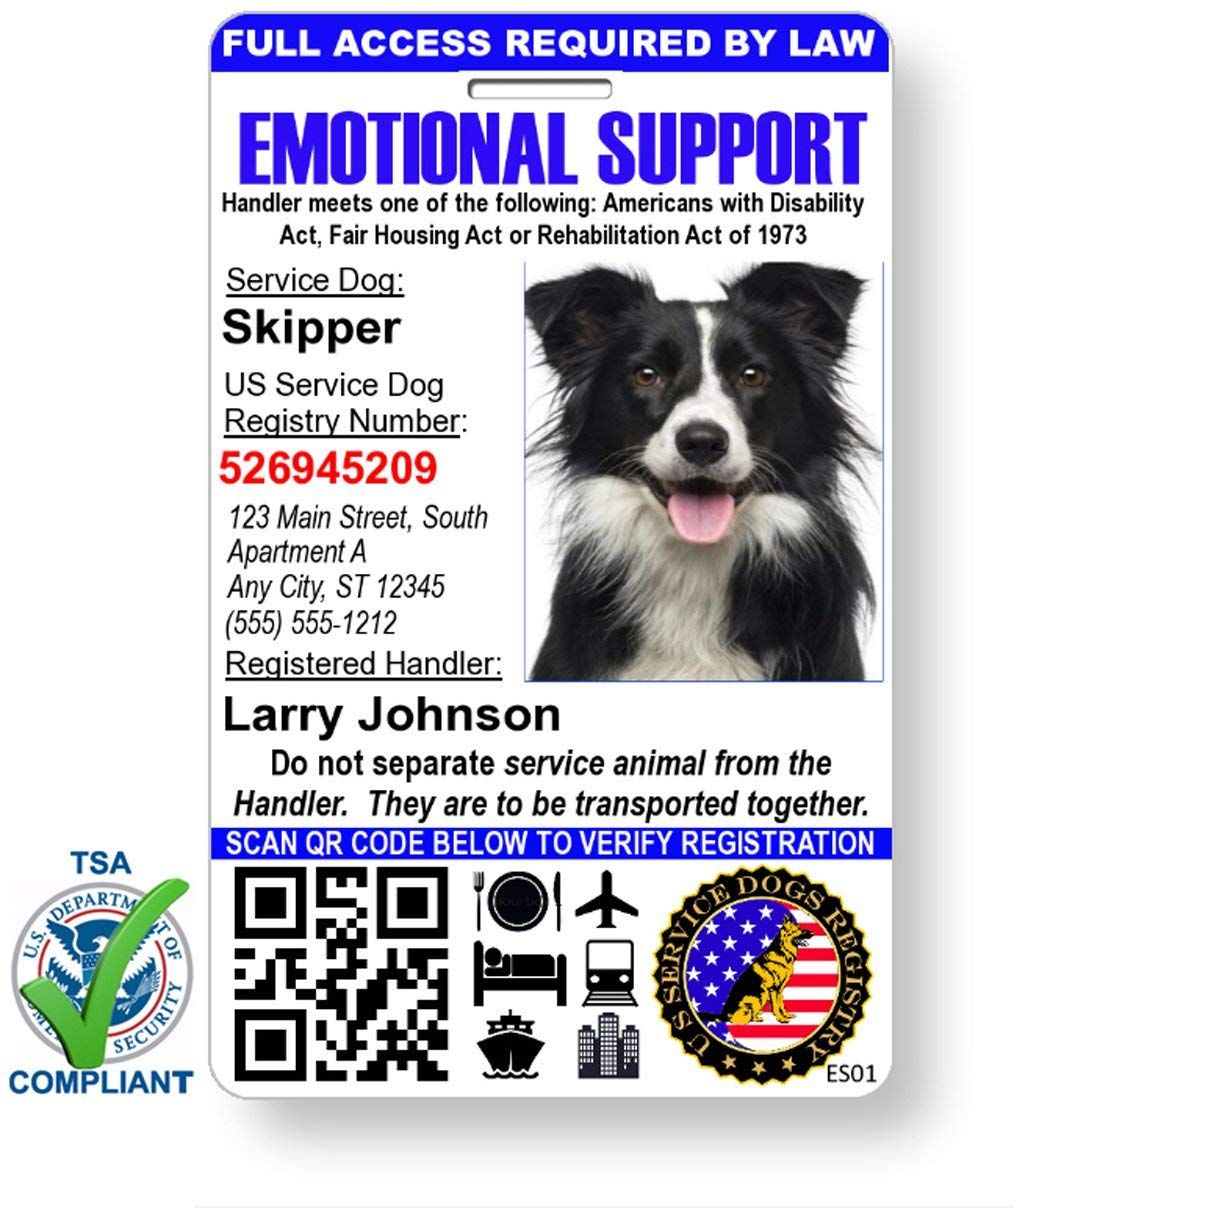 Just 4 Paws Custom Holographic Qr Code Emotional Support Dog Id Card With Registration To Service Dogs Reg Emotional Support Dog Emotional Support Service Dogs